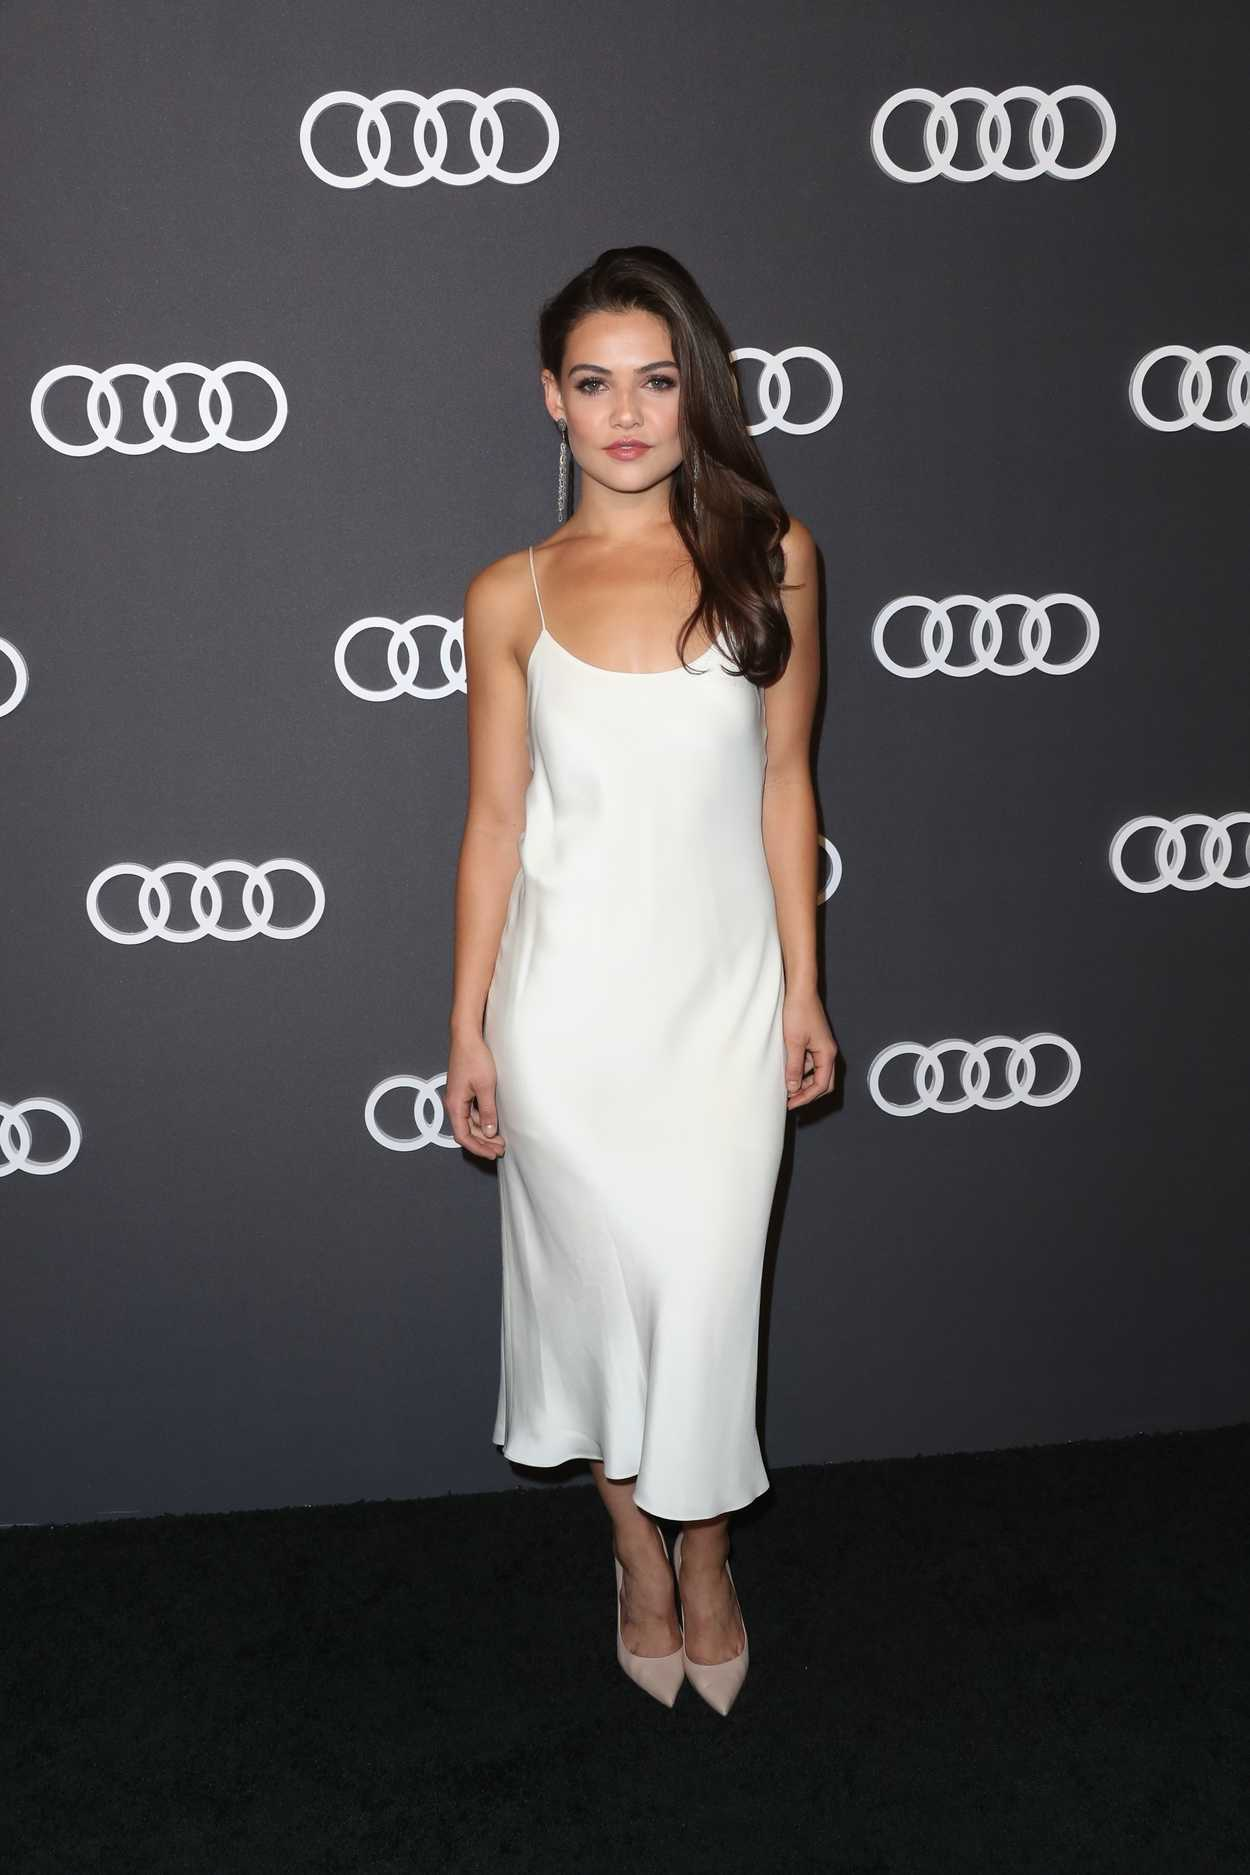 Danielle Campbell At Audi Emmy Party In Los Angeles 09 14